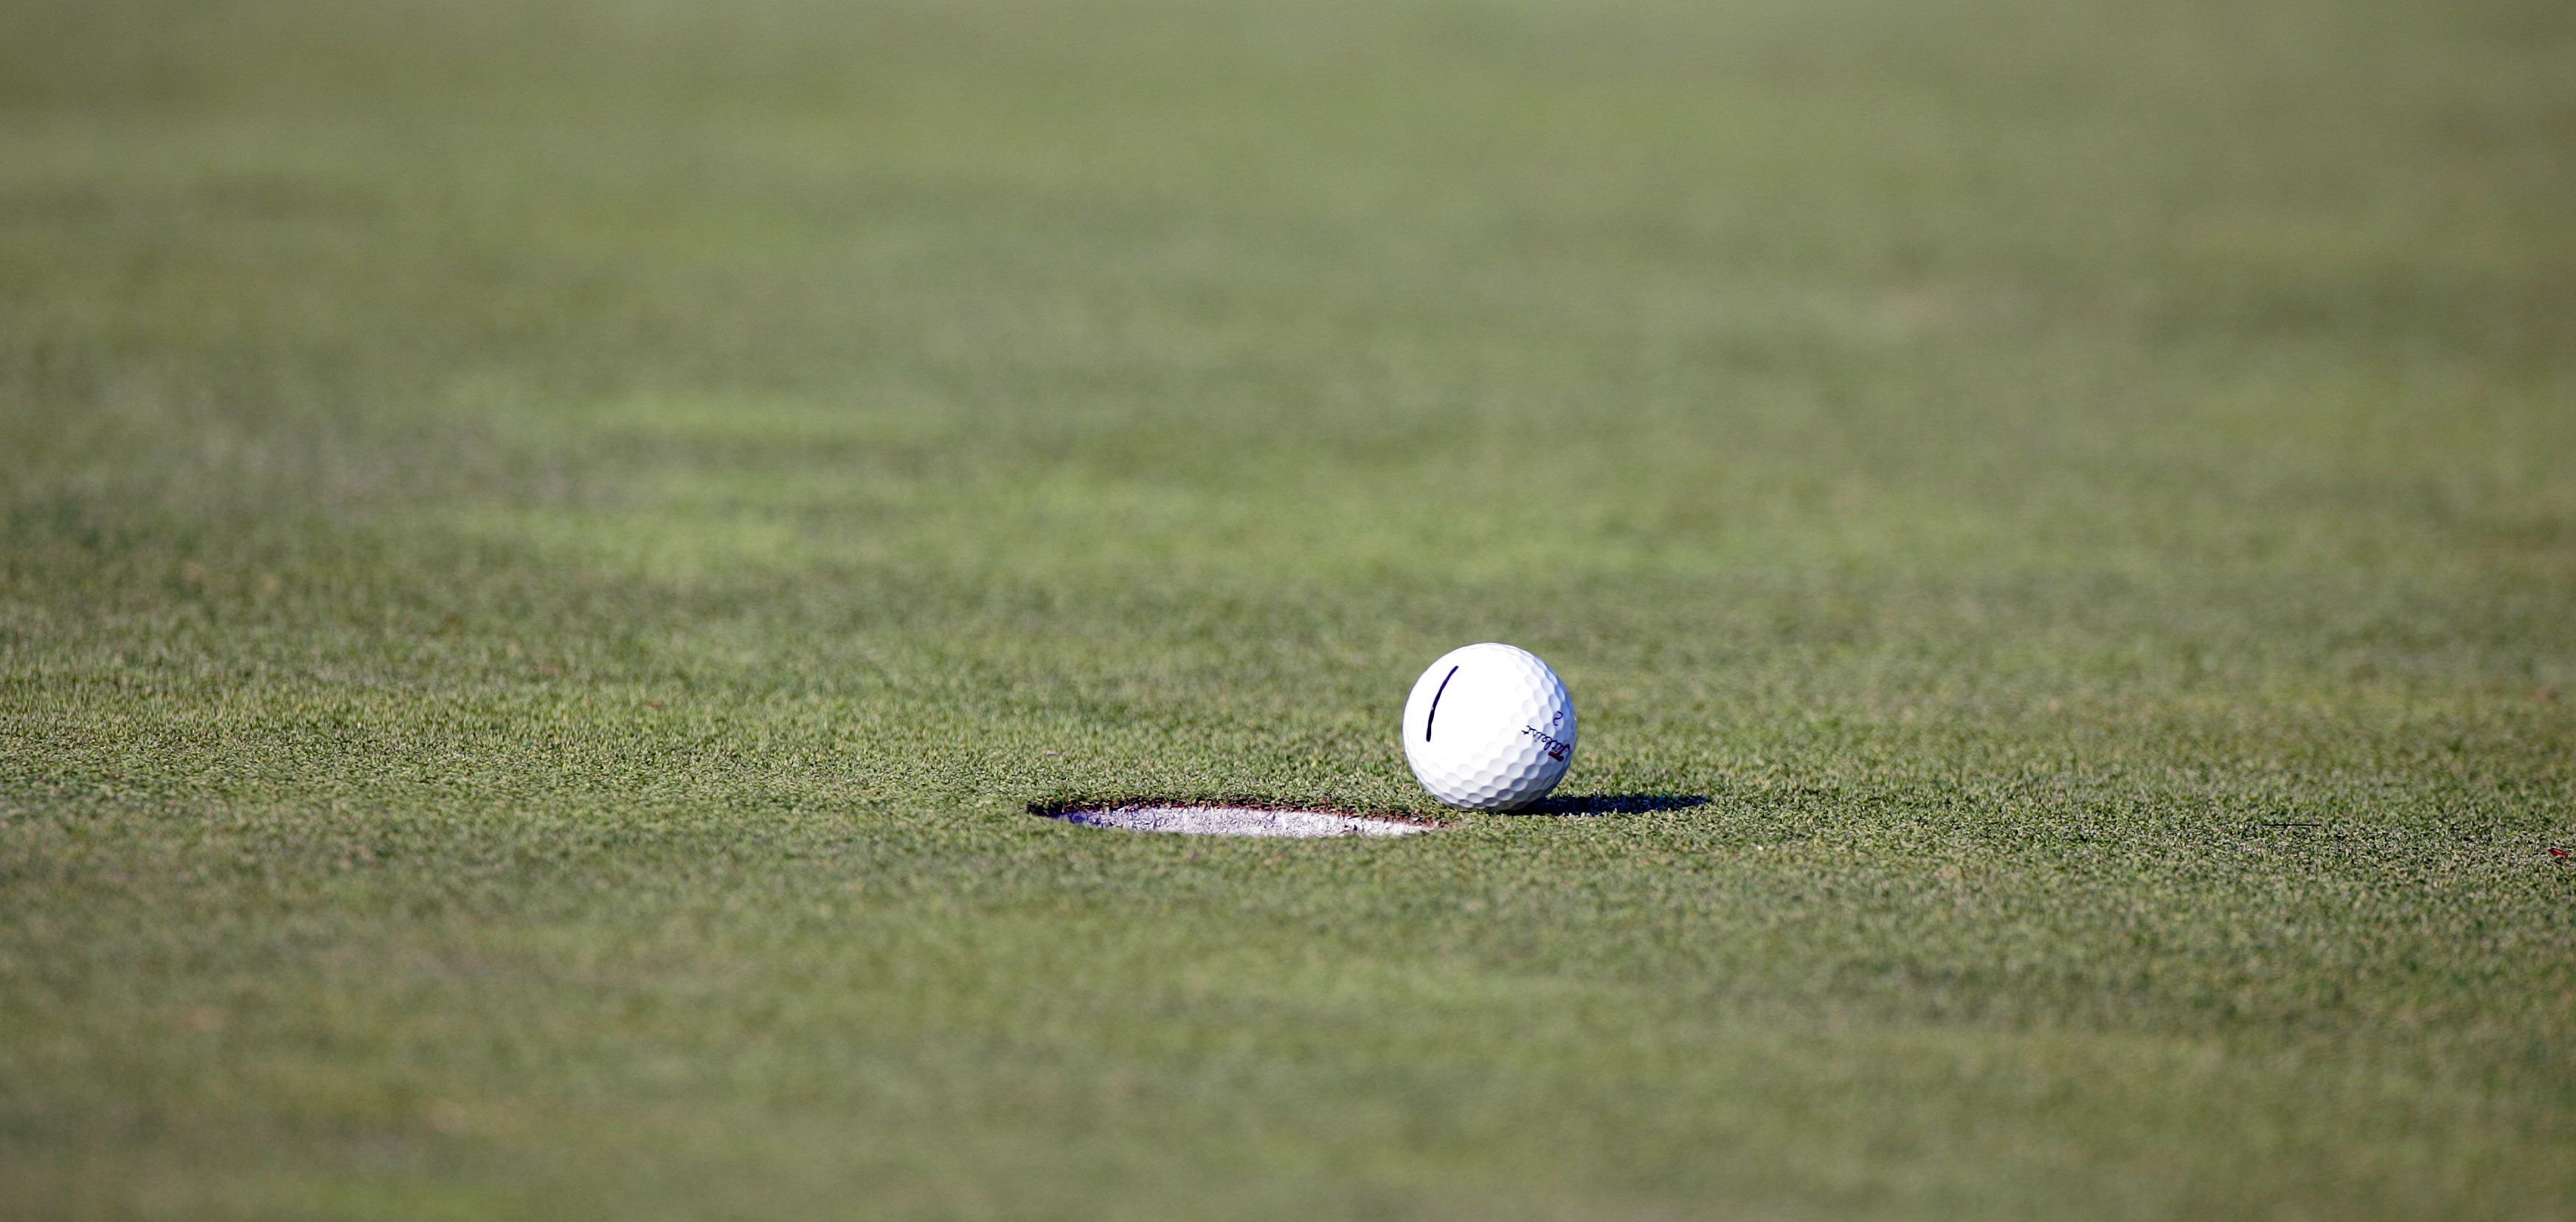 A golf ball falls short during the final round of the 2005 Bell Canadian Open, September 11,2005, held at Shaughnessy Golf & Country Club, Vancouver, B.C. He finished at -5 for the tournament. | Source: Getty Images